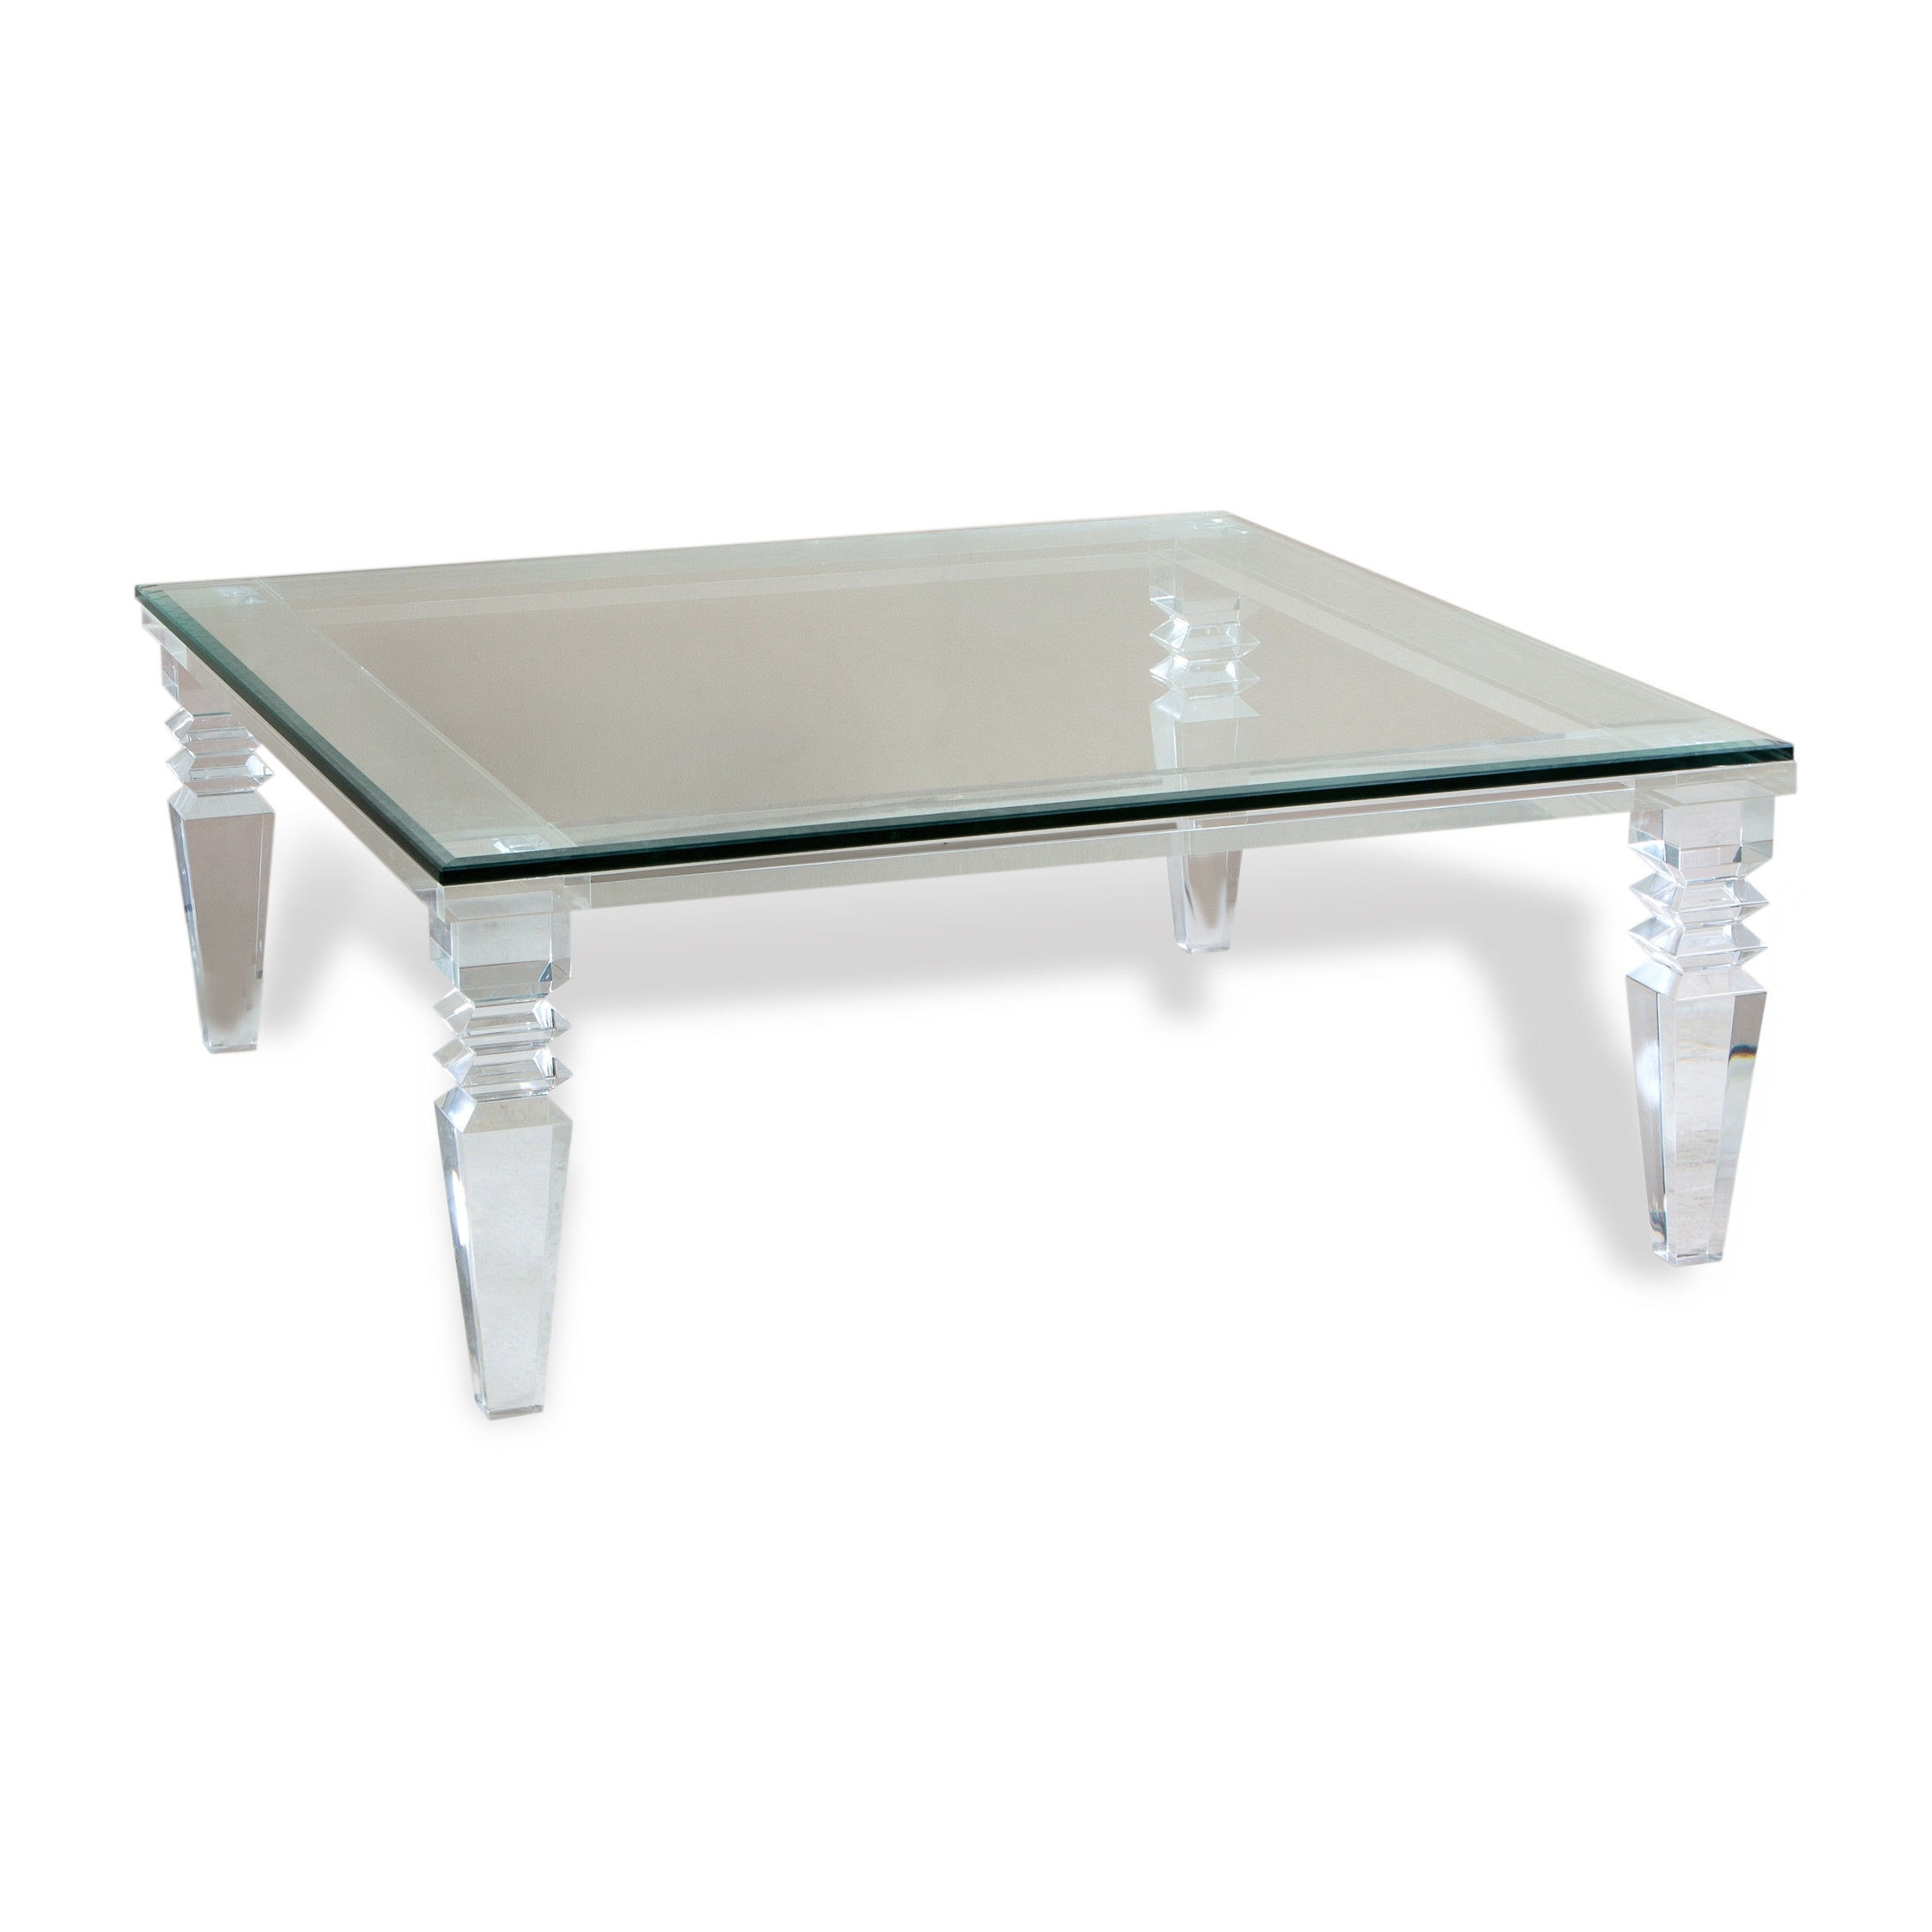 Acrylic Coffee Table For Sale Lovely Furniture Clear Glass Coffee Throughout Peekaboo Acrylic Tall Coffee Tables (View 12 of 30)